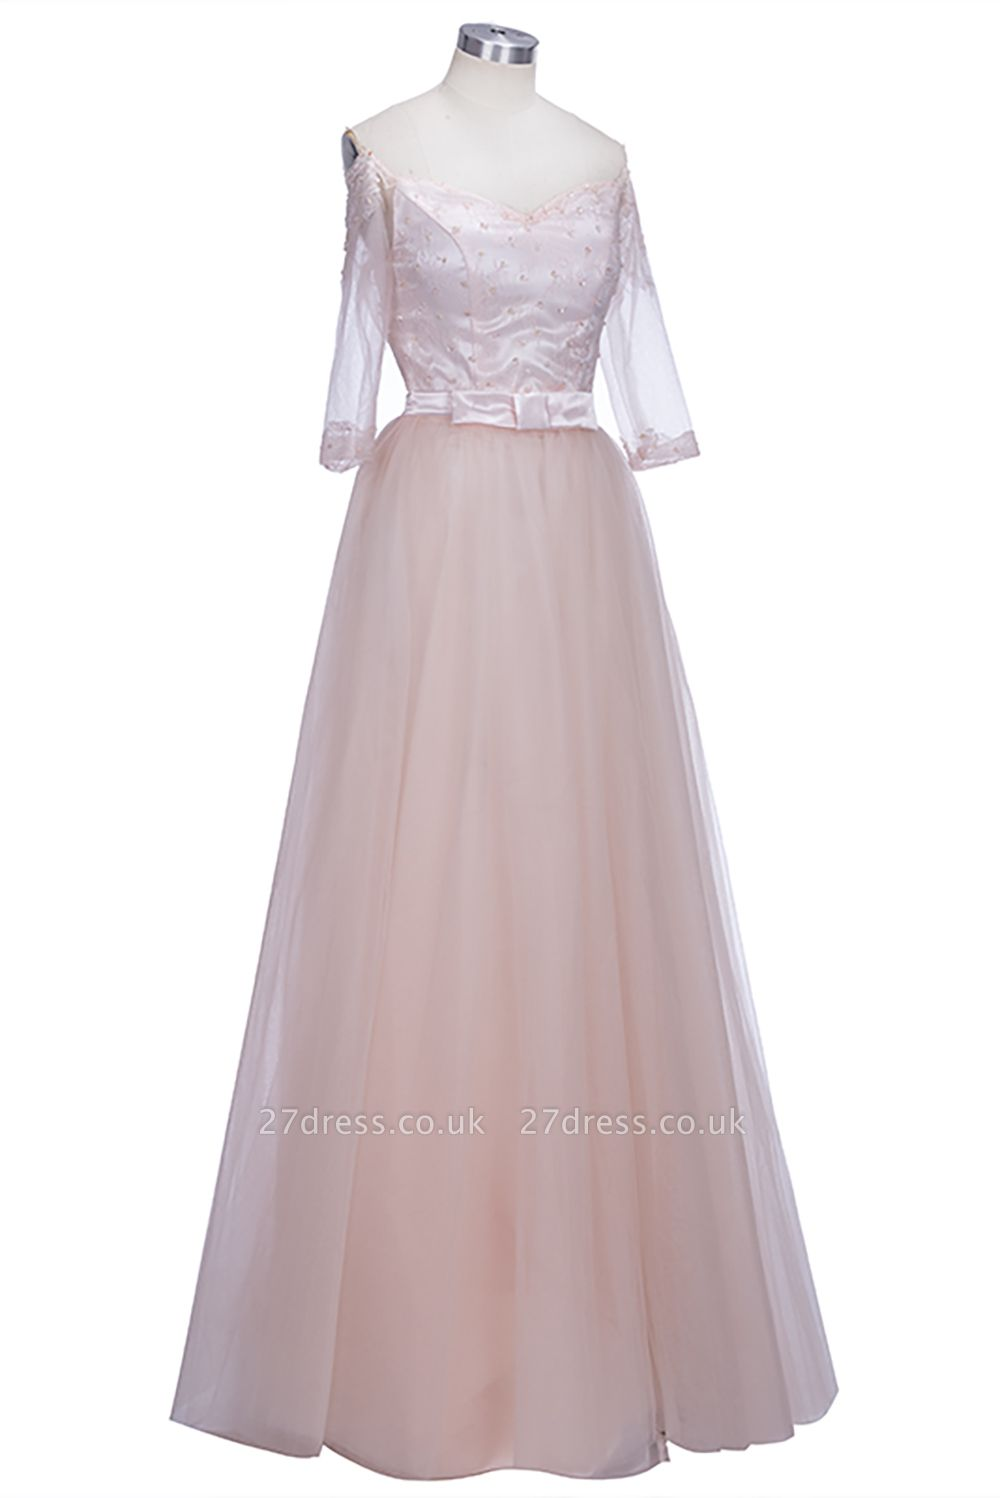 Off-the-shoulder Tulle Lace A-line Gorgeous Half-Sleeves Prom Dress UKes UK